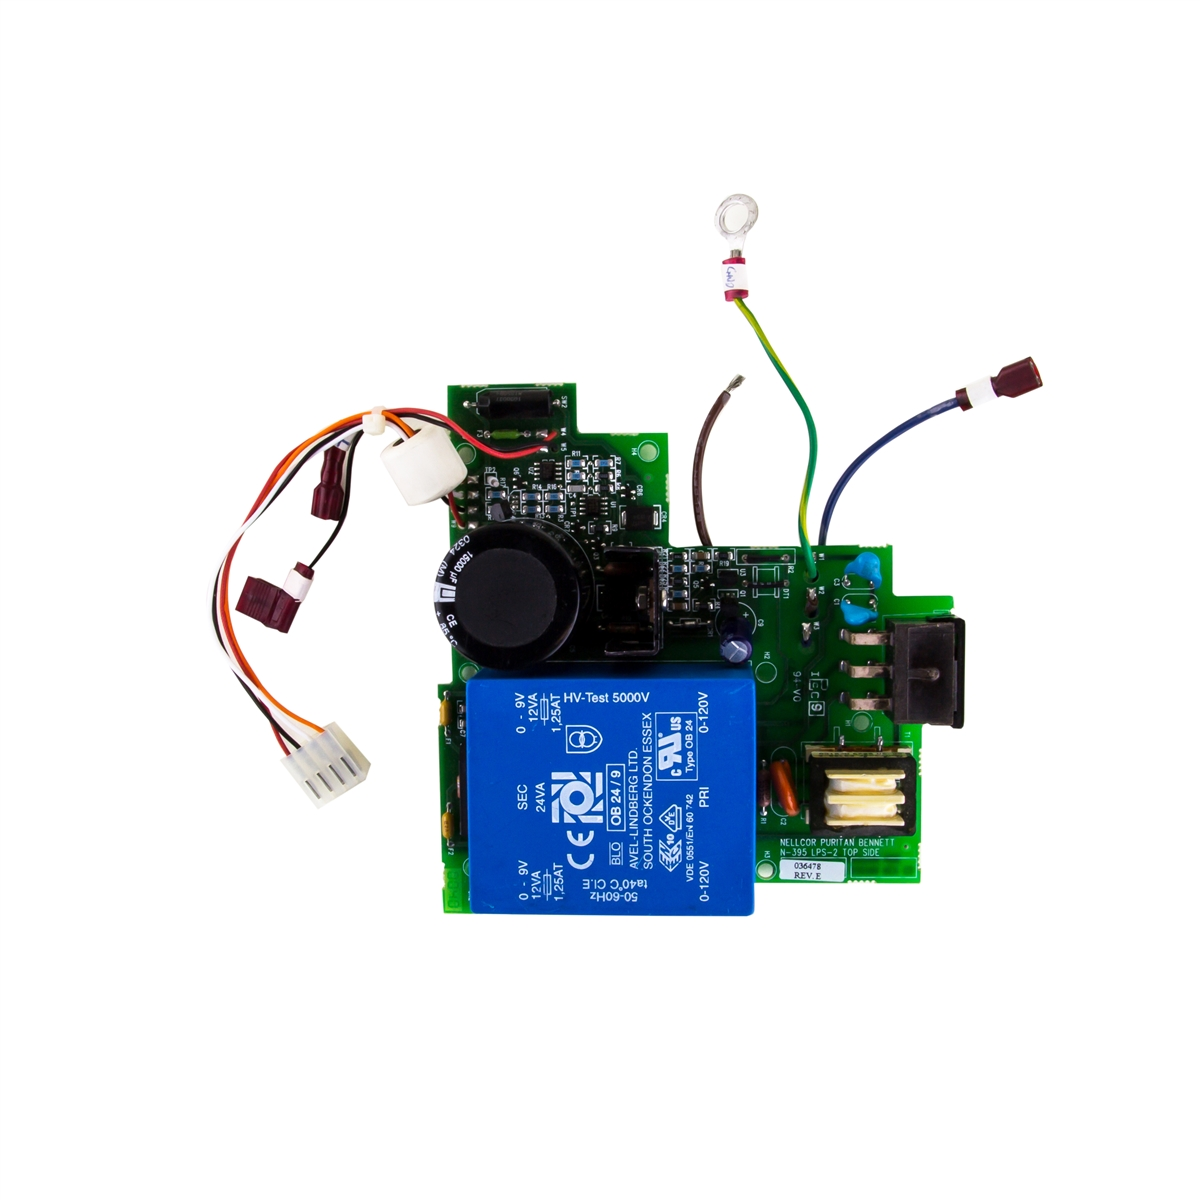 Nellcor N-395 Pulse Oximeter Monitor Power Supply Assembly